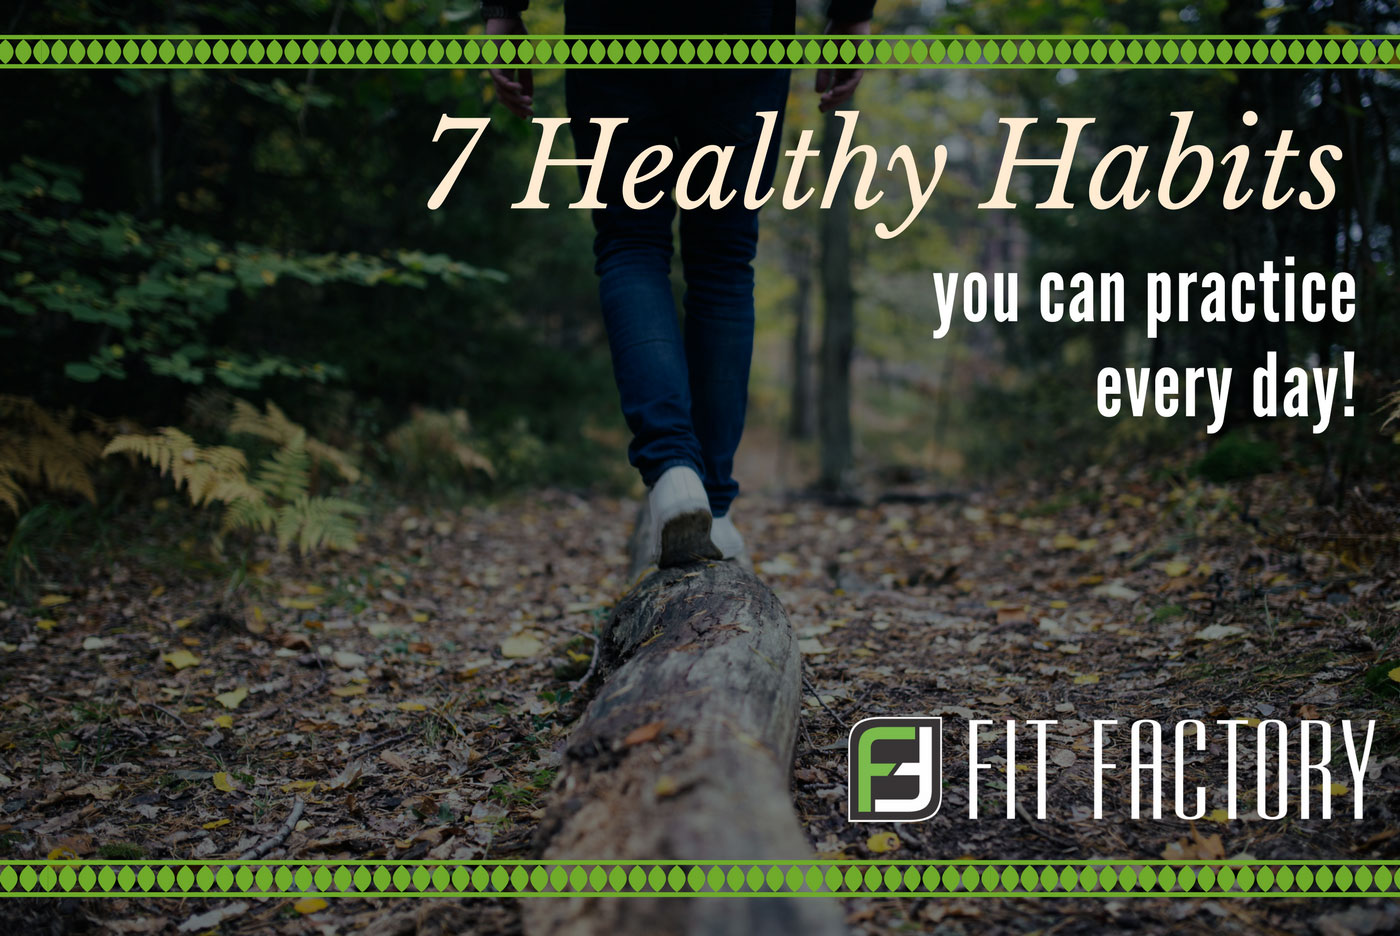 7 Healthy Habits That You Can Practice Every Day